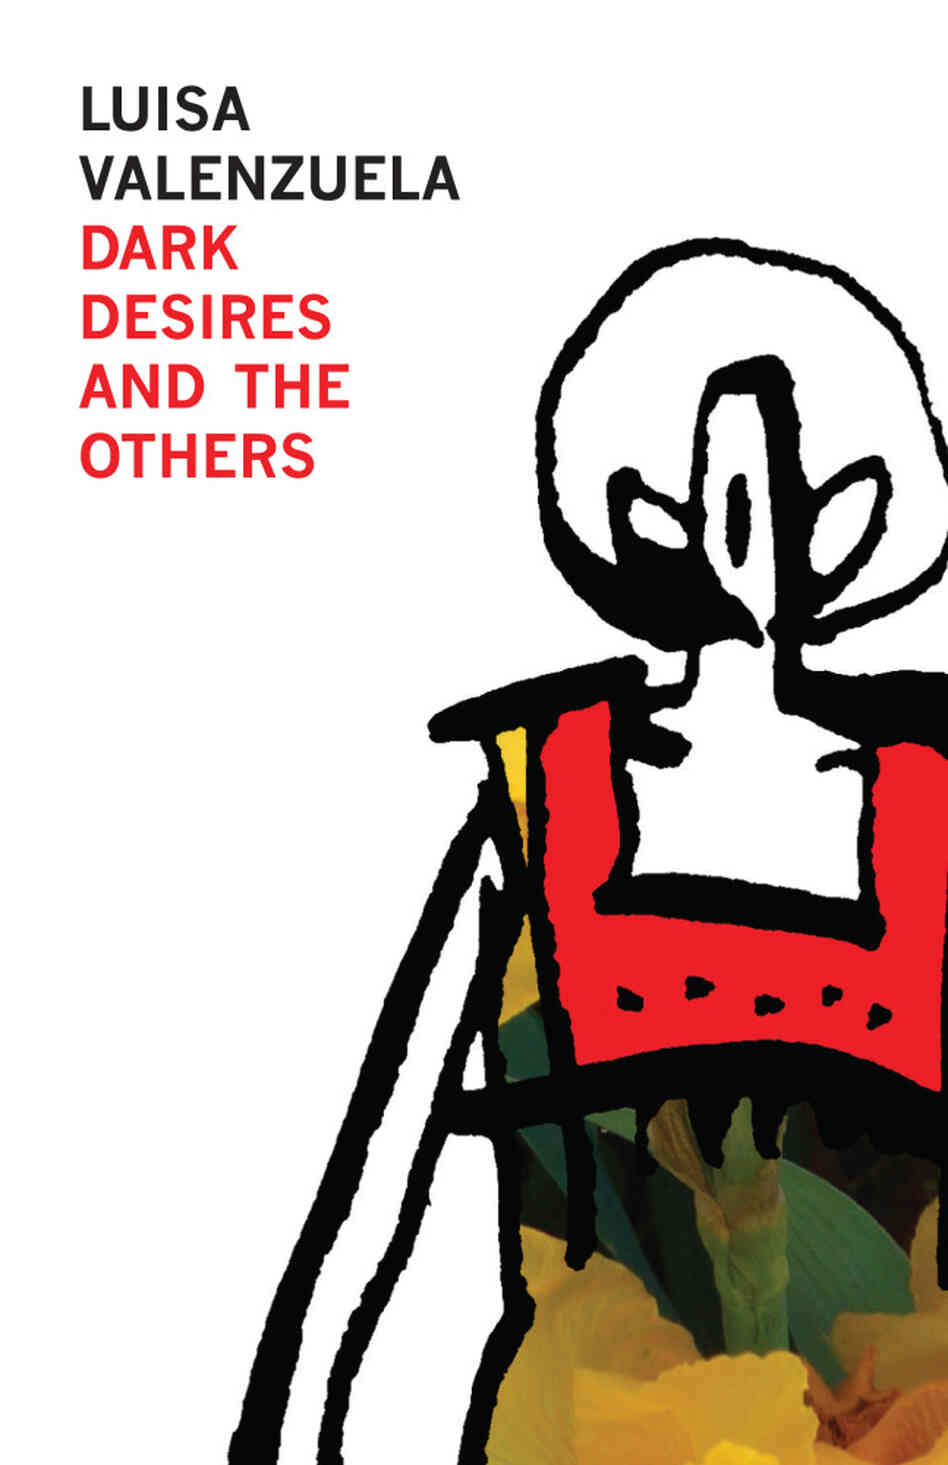 Dark Desires and the Others, by Luisa Valenzuela